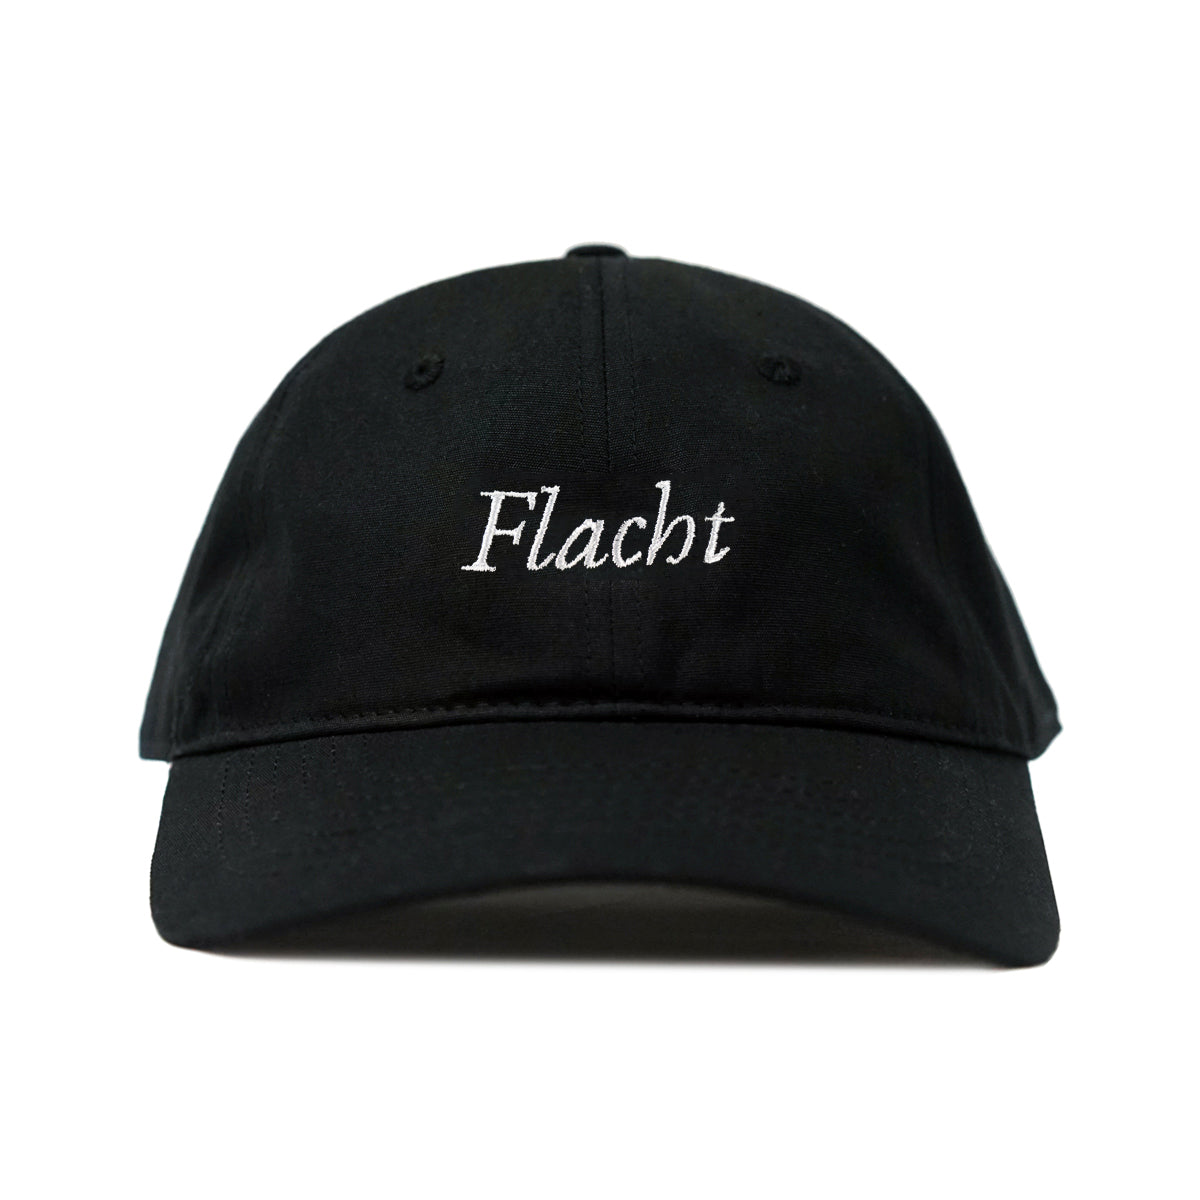 PC FLACHT CAP BLACK